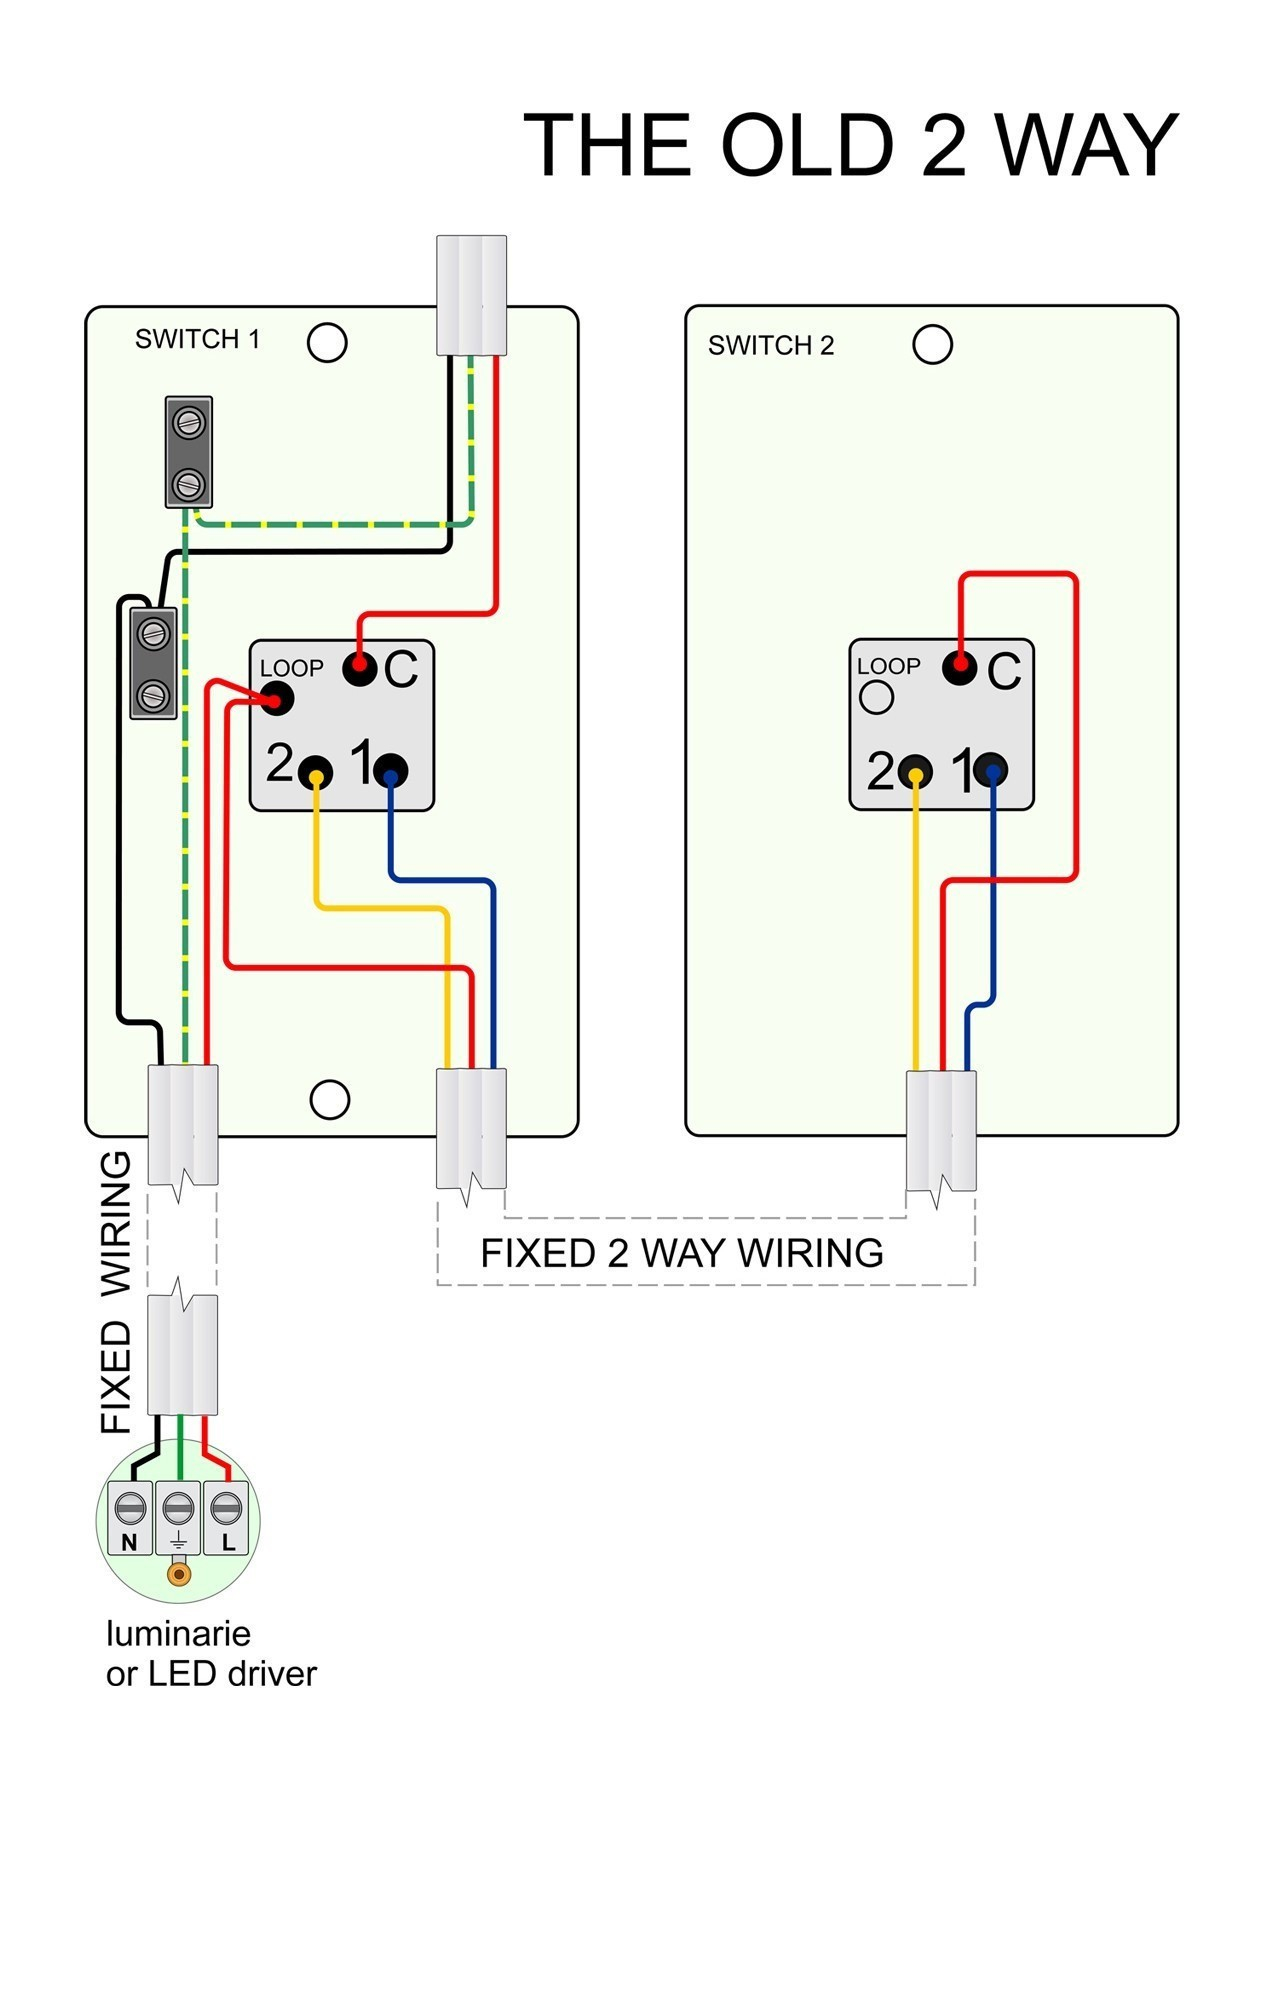 Wiring Diagram Collection - 2 Way Switch Wiring Diagram